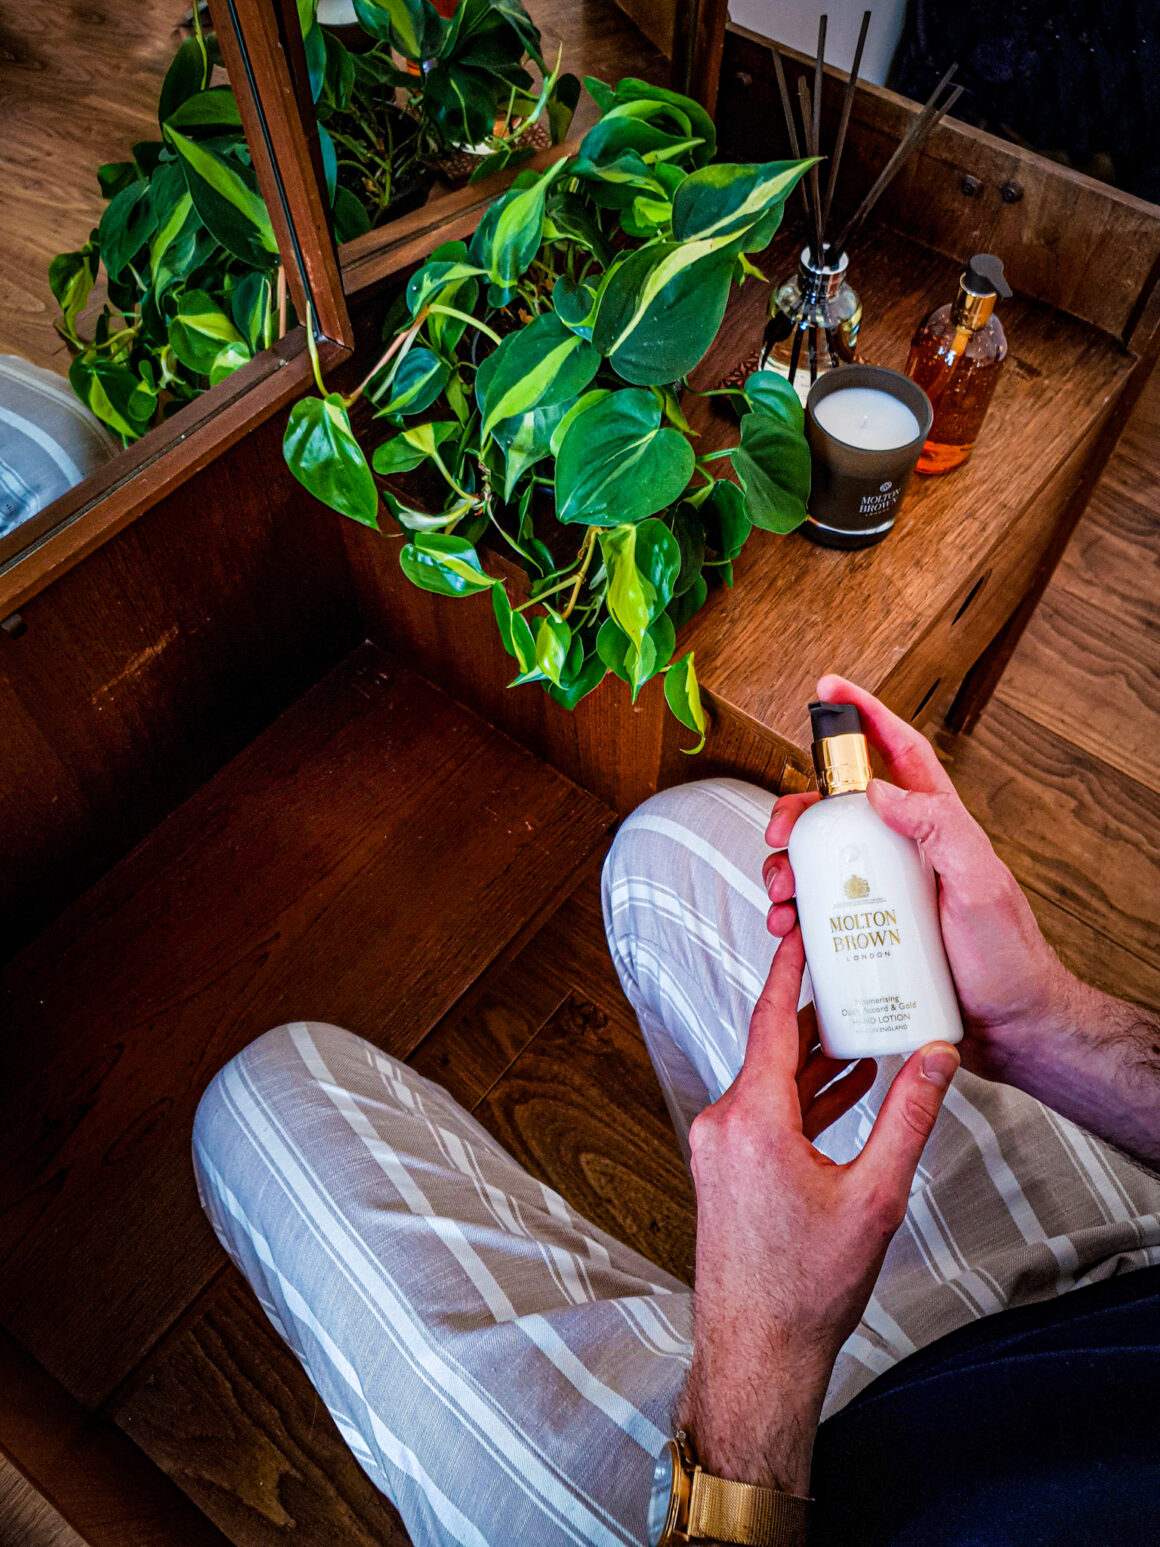 At Home with Molton Brown Tobacco Absolute hand lotion